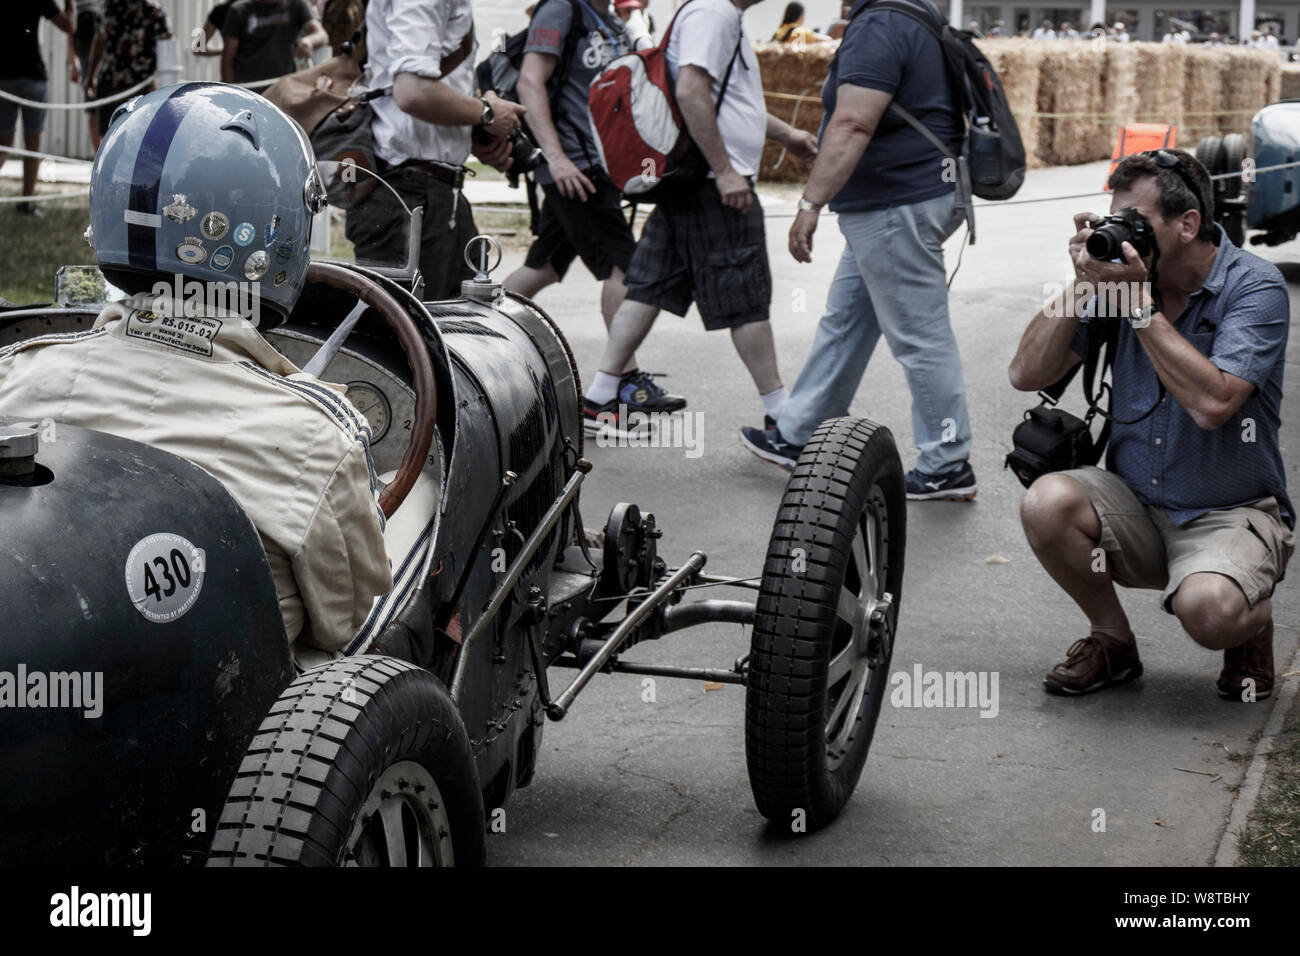 1931 Bugatti Type 35C waiting to go out on the hillclimb at the 2019 Goodwood Festival of Speed, Sussex, UK. Passing spectators and photographer. Stock Photo